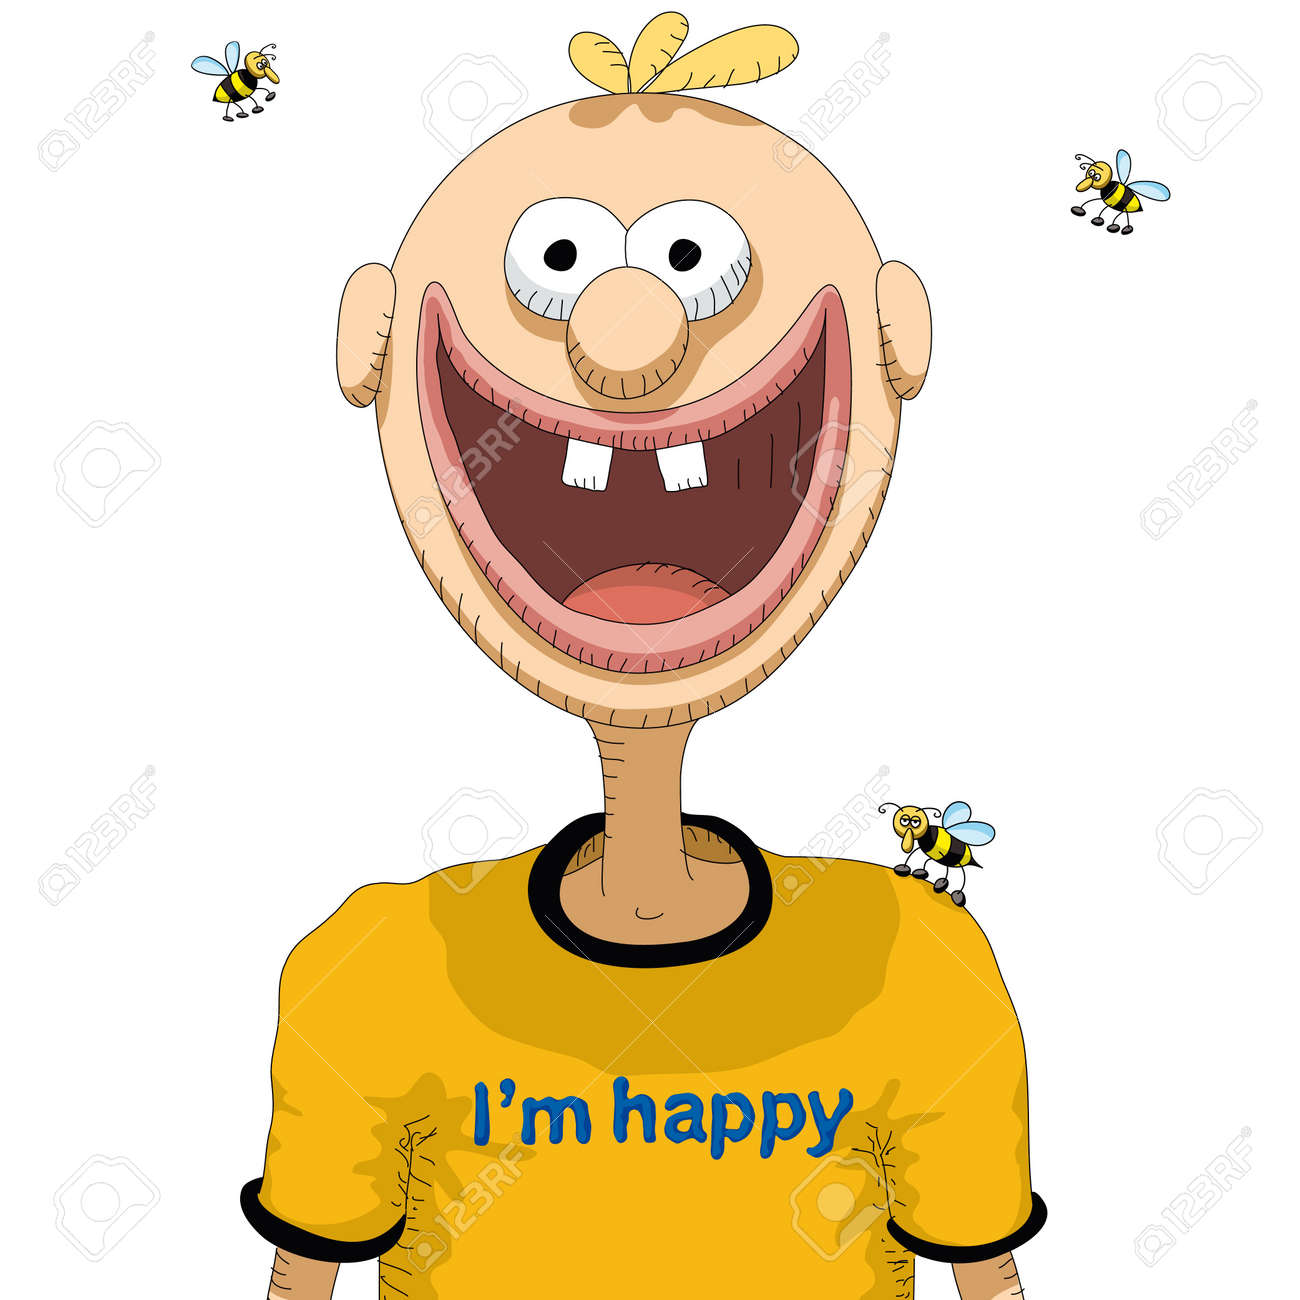 happy person royalty free cliparts vectors and stock illustration rh 123rf com happy person face cartoon happy person face cartoon